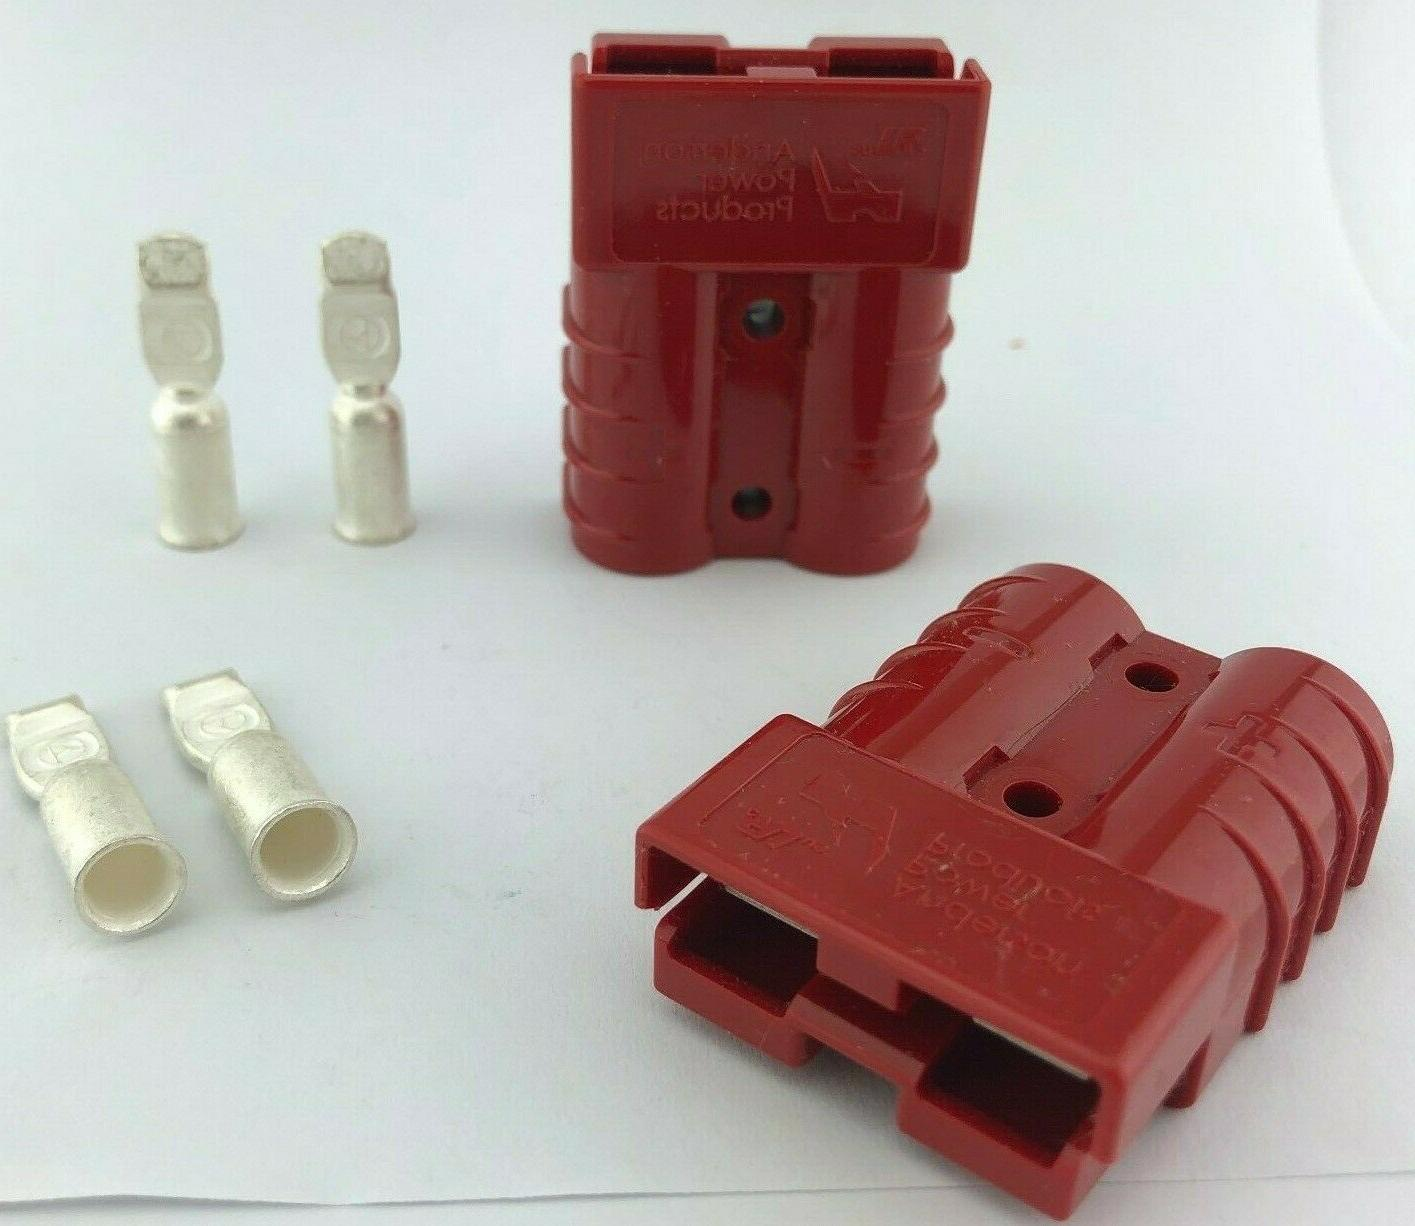 Anderson Connector Cable Wire Quick Connect Battery Plug